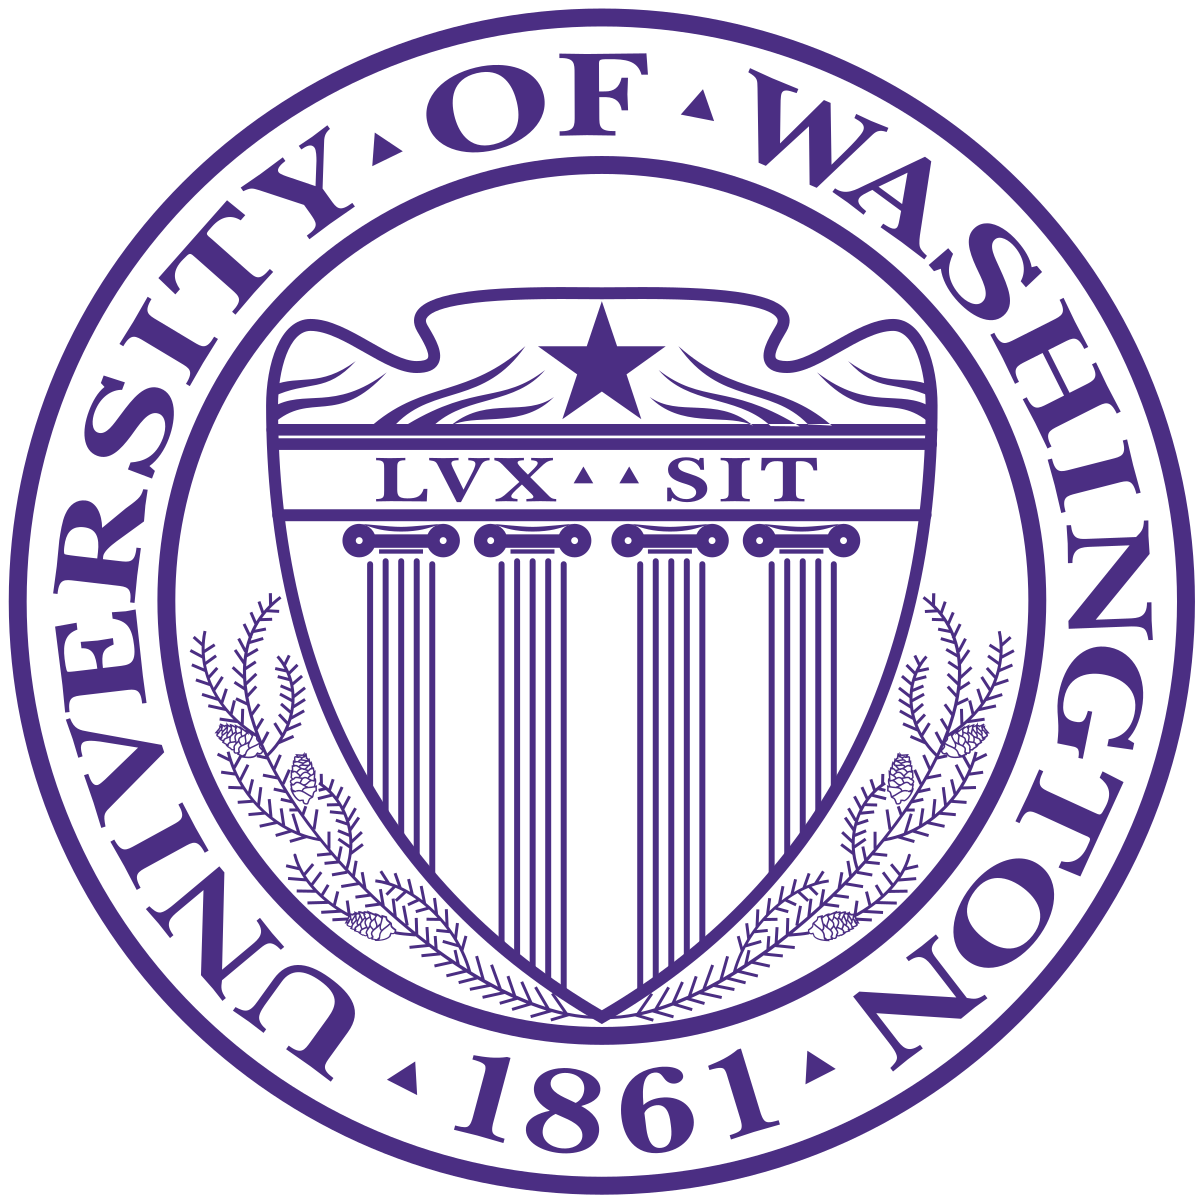 Husky svg george brown. University of washington wikipedia